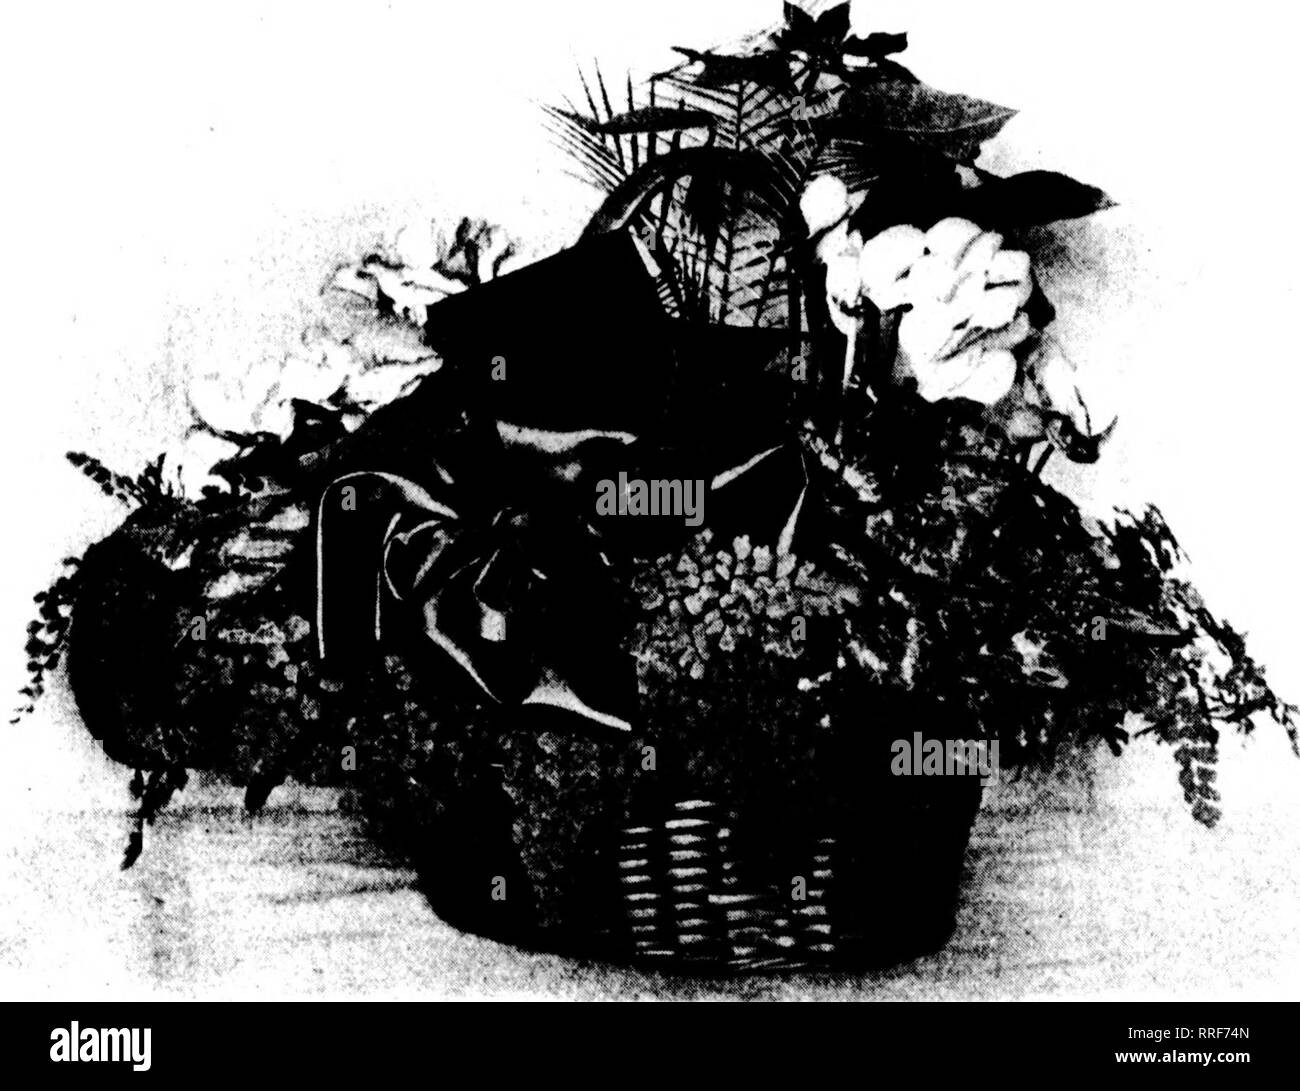 . Florists' review [microform]. Floriculture. 38 The Florists* Review Dbcembeu 9. I'jaO. More Popular Year by Year, the Cyclamen Is Now Indispensable. villi iln iH't >cll ;ill your plants . rt'incmhcr lliat they can be kept, ir ncrcssnry, for tliirr iiKnitli-- ;jii(l tliat thiy can even he kept in proscntaMc rendition for an Kaster a- earlv as -a r >)iall liaxc in ll'L'l. Begonias. I>e>;iiniii^ ? enie next In cyrlann n^ in favor. Mor( of tlicni may lie solii than of cyclaiiK ii.s, Init, vvliilc tliey may cati a jireater (irofusion of flowers, the have loss variety of colorines at - Stock Image